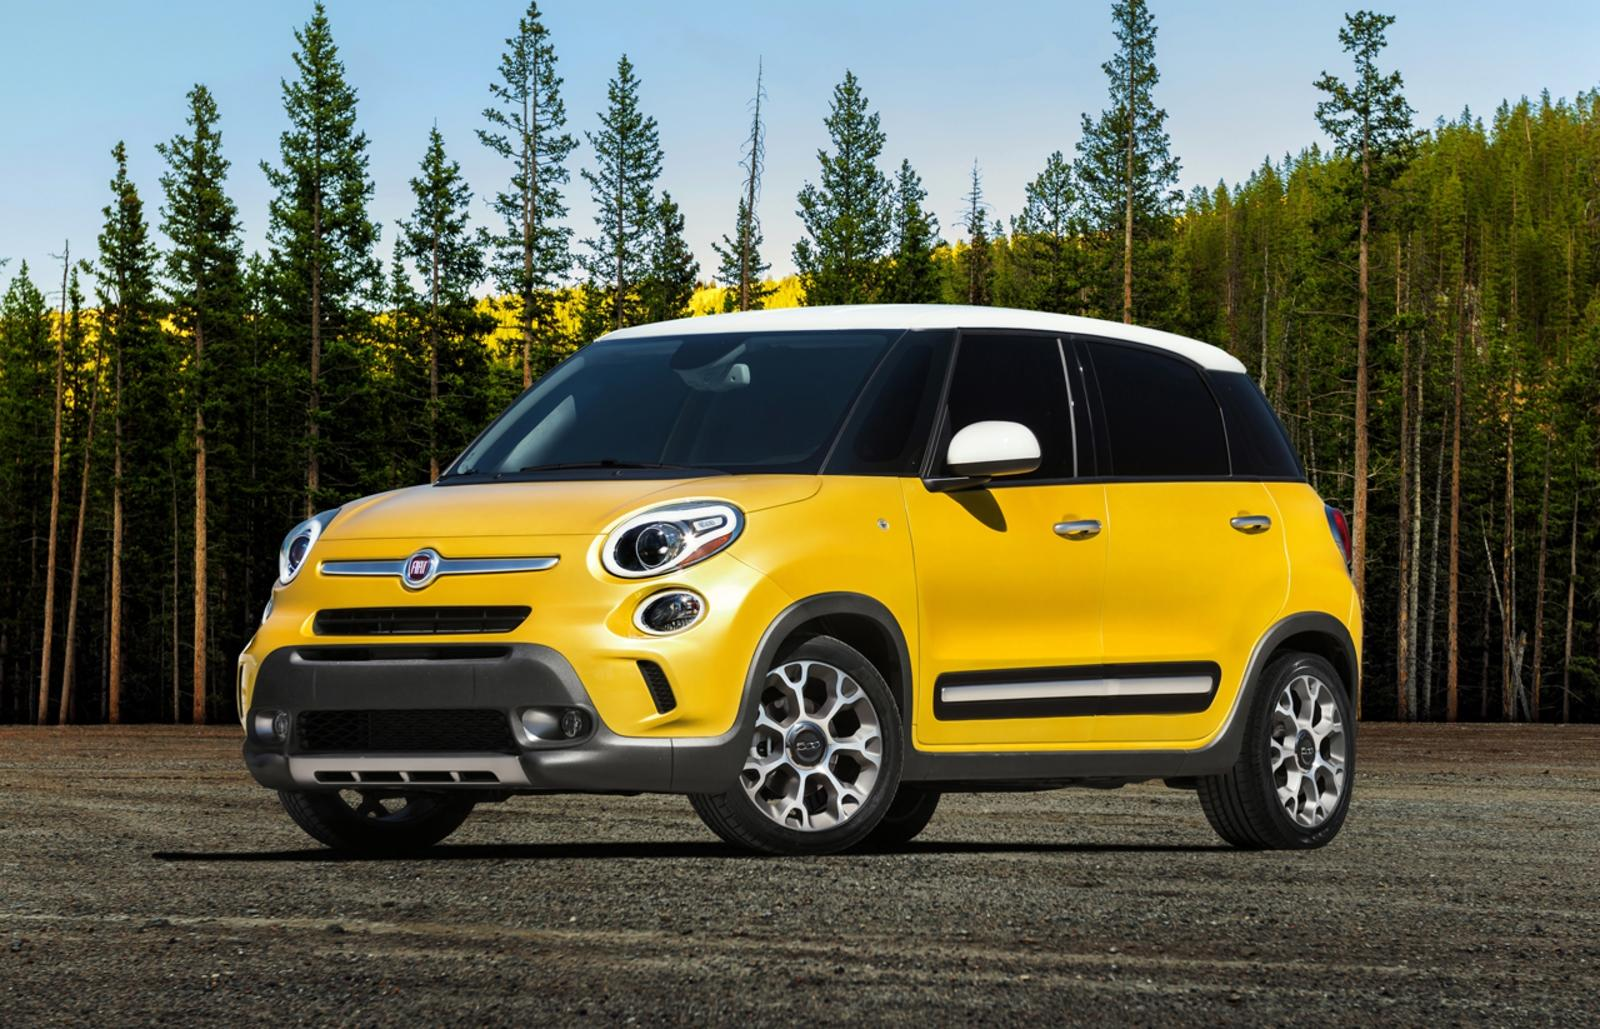 2014 fiat 500l trekking review top speed. Black Bedroom Furniture Sets. Home Design Ideas